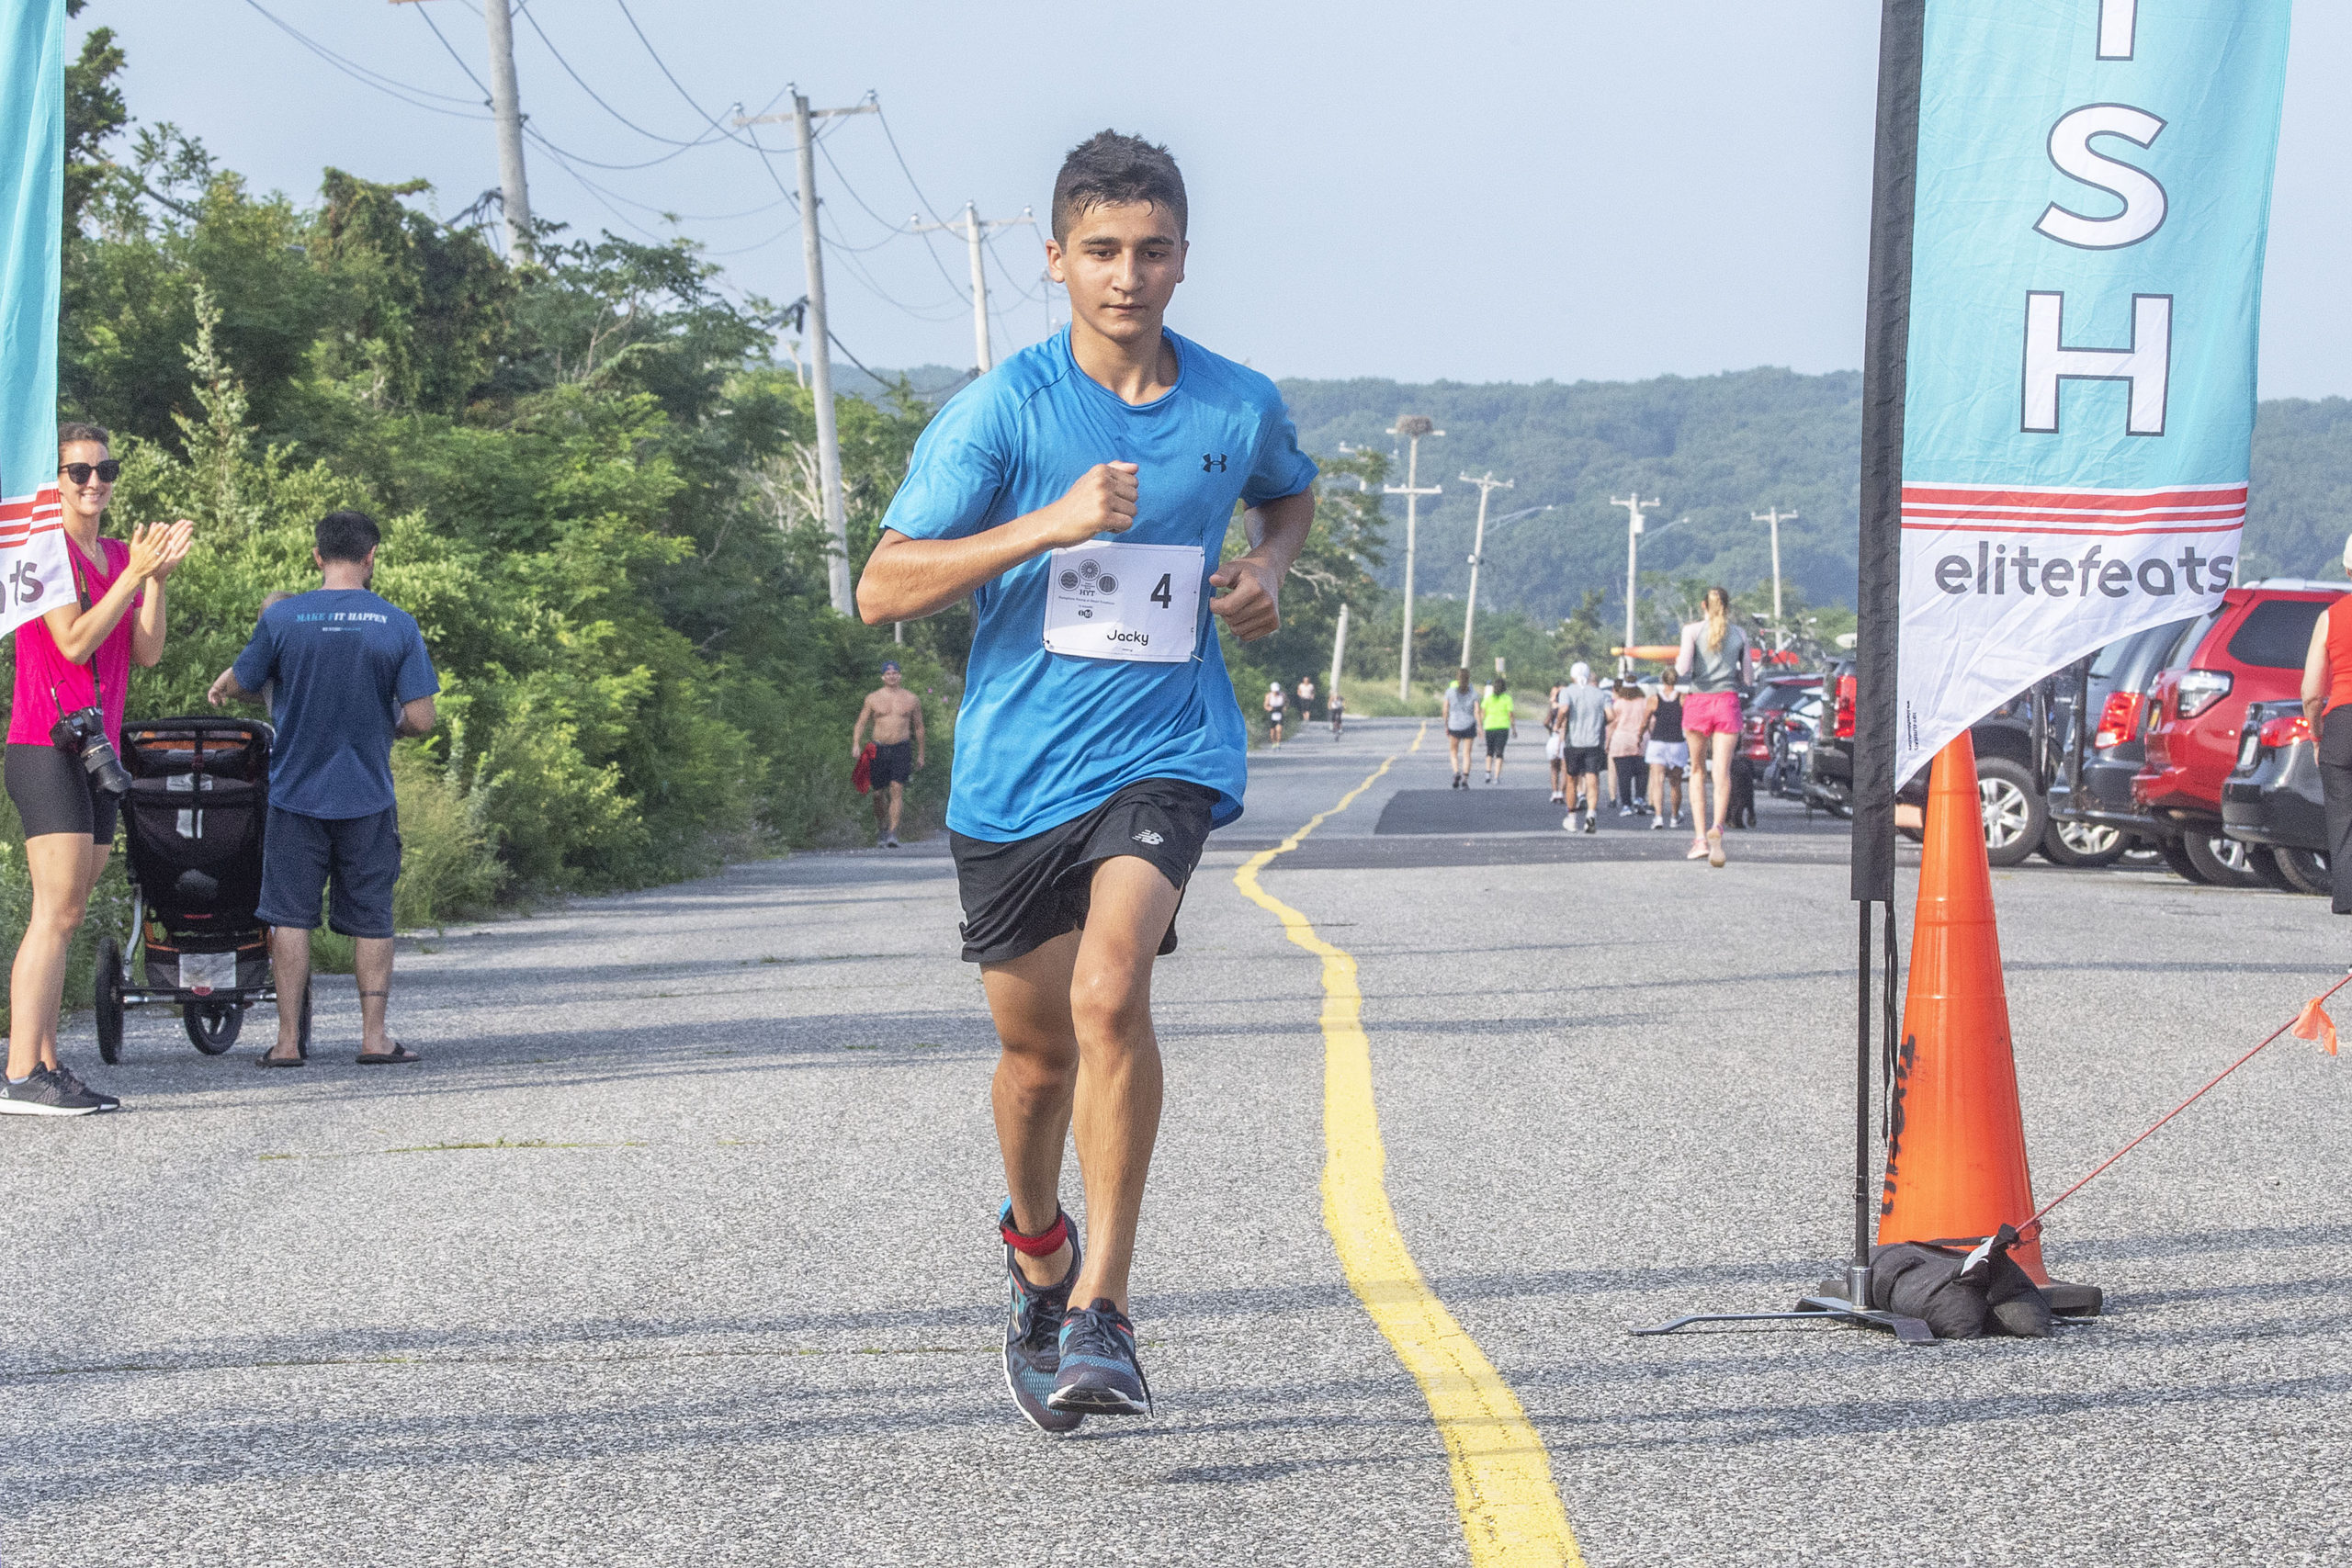 Jack DiMaggio, 15, of Smithtown was the first youth finisher of the Hamptons Young at Heart Triathlon.